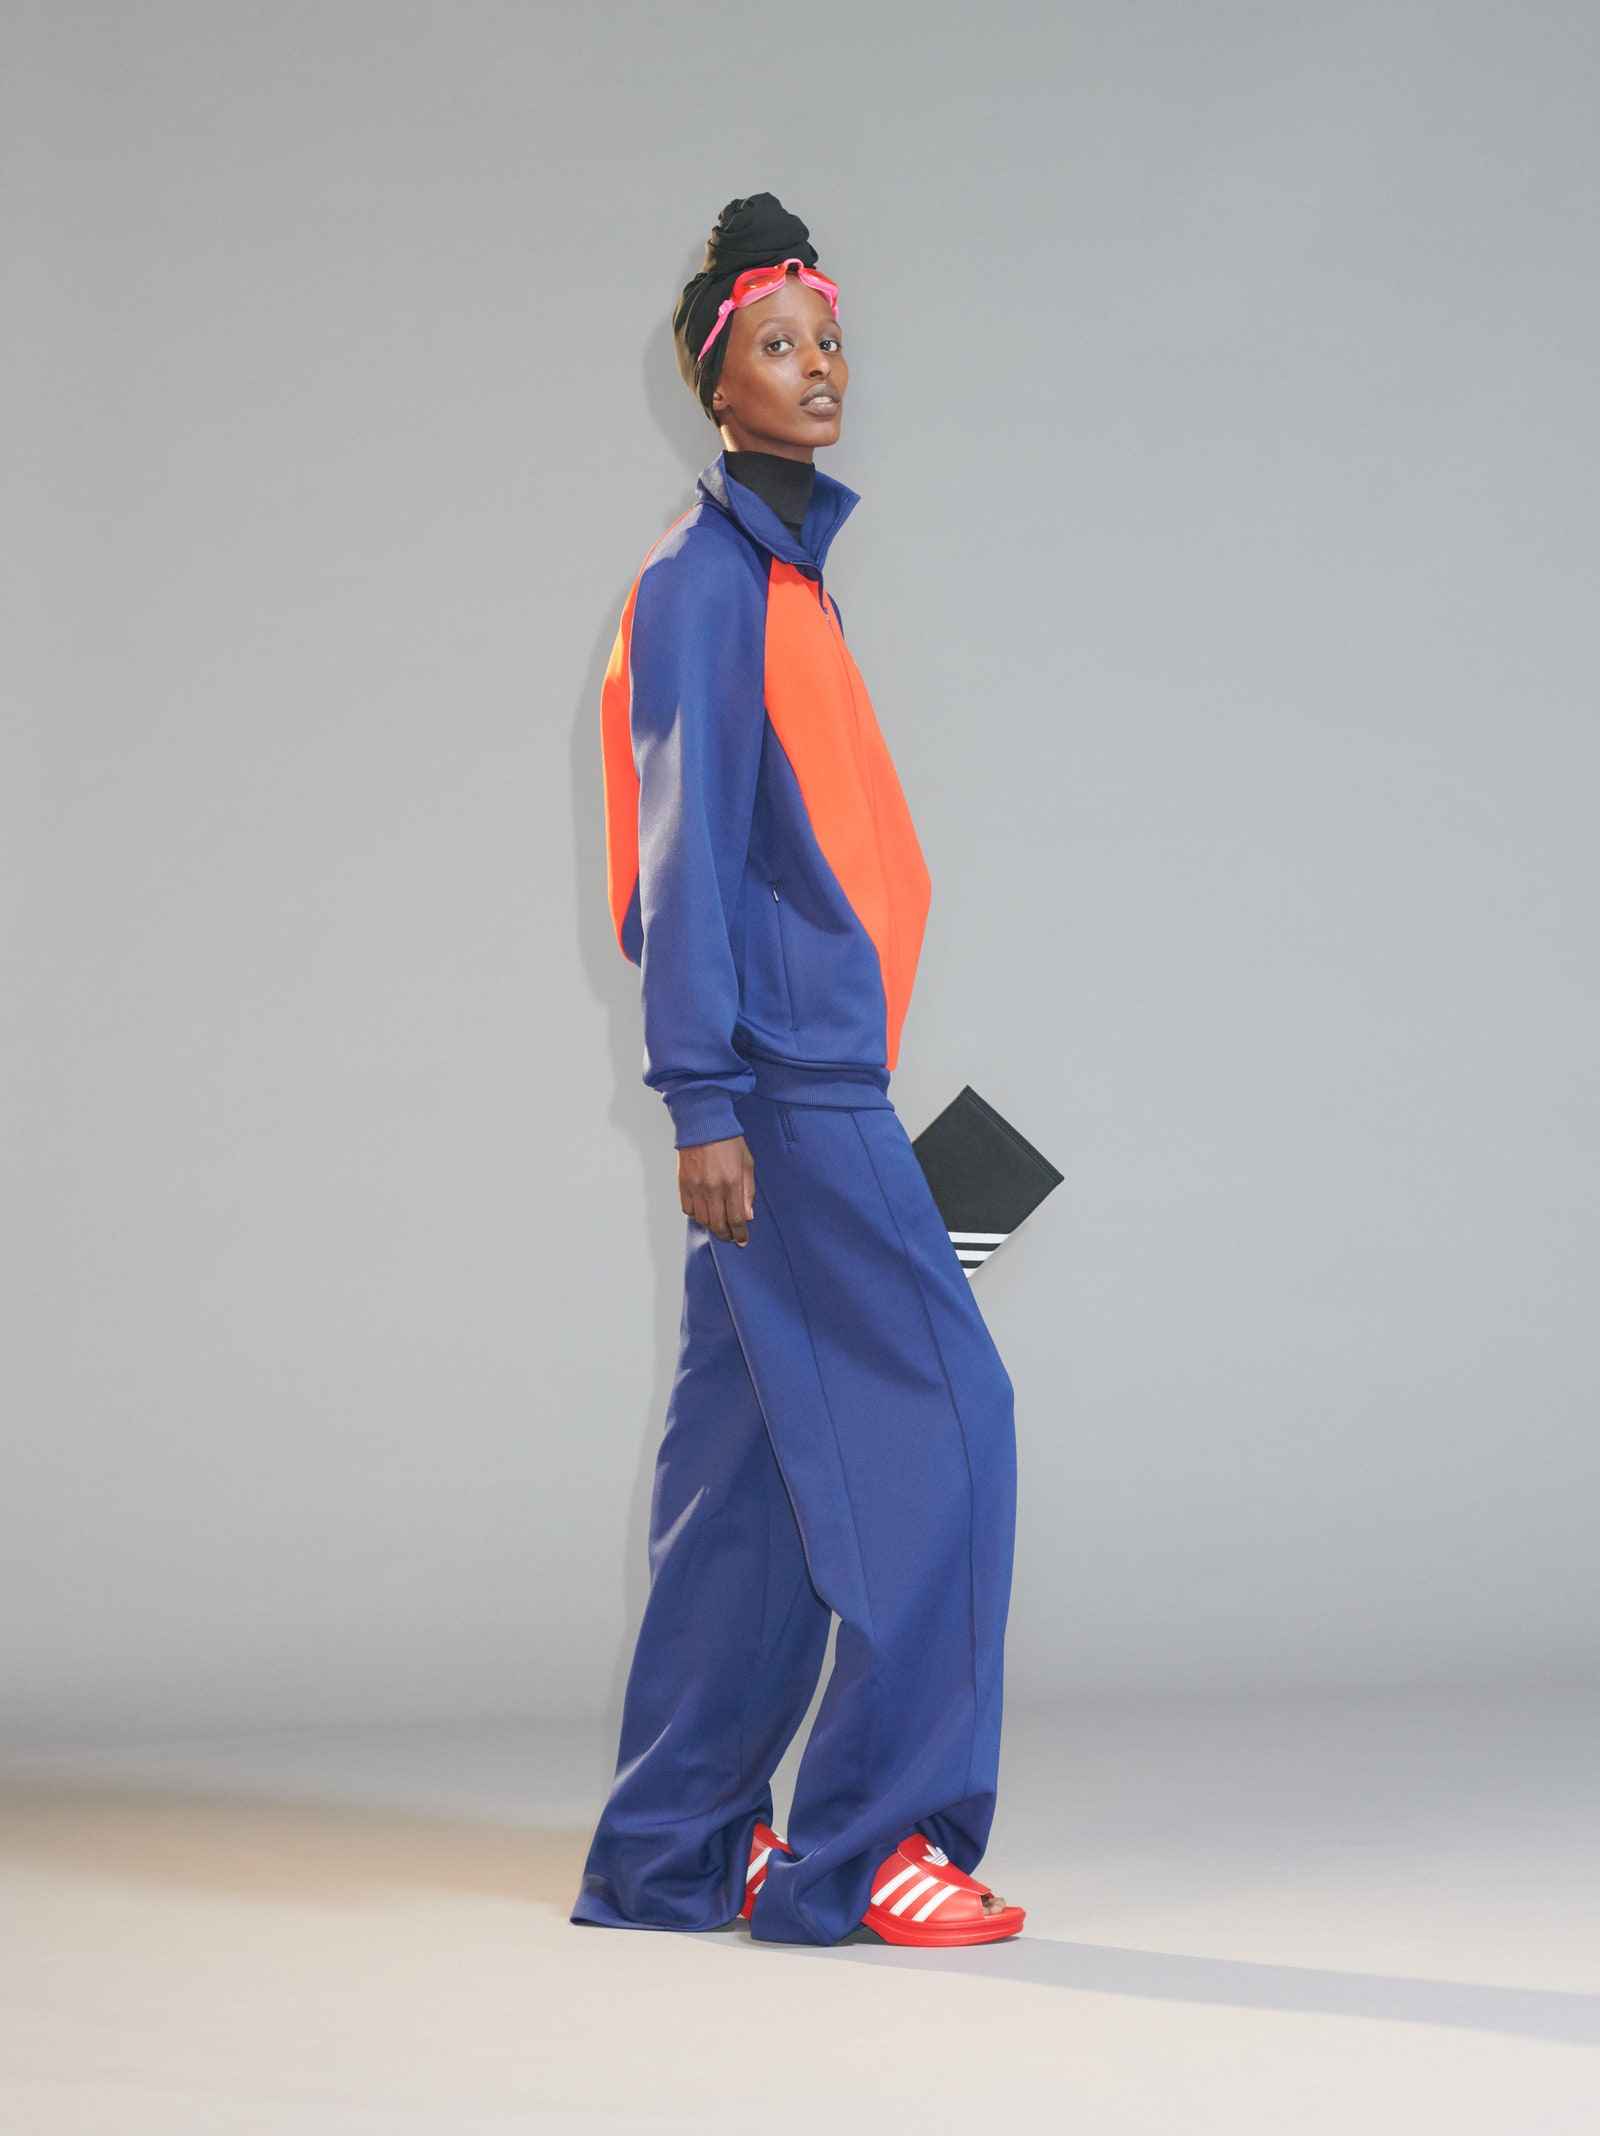 Adidas x Lotta Volkova Introducing the Aristocratic Tracksuit